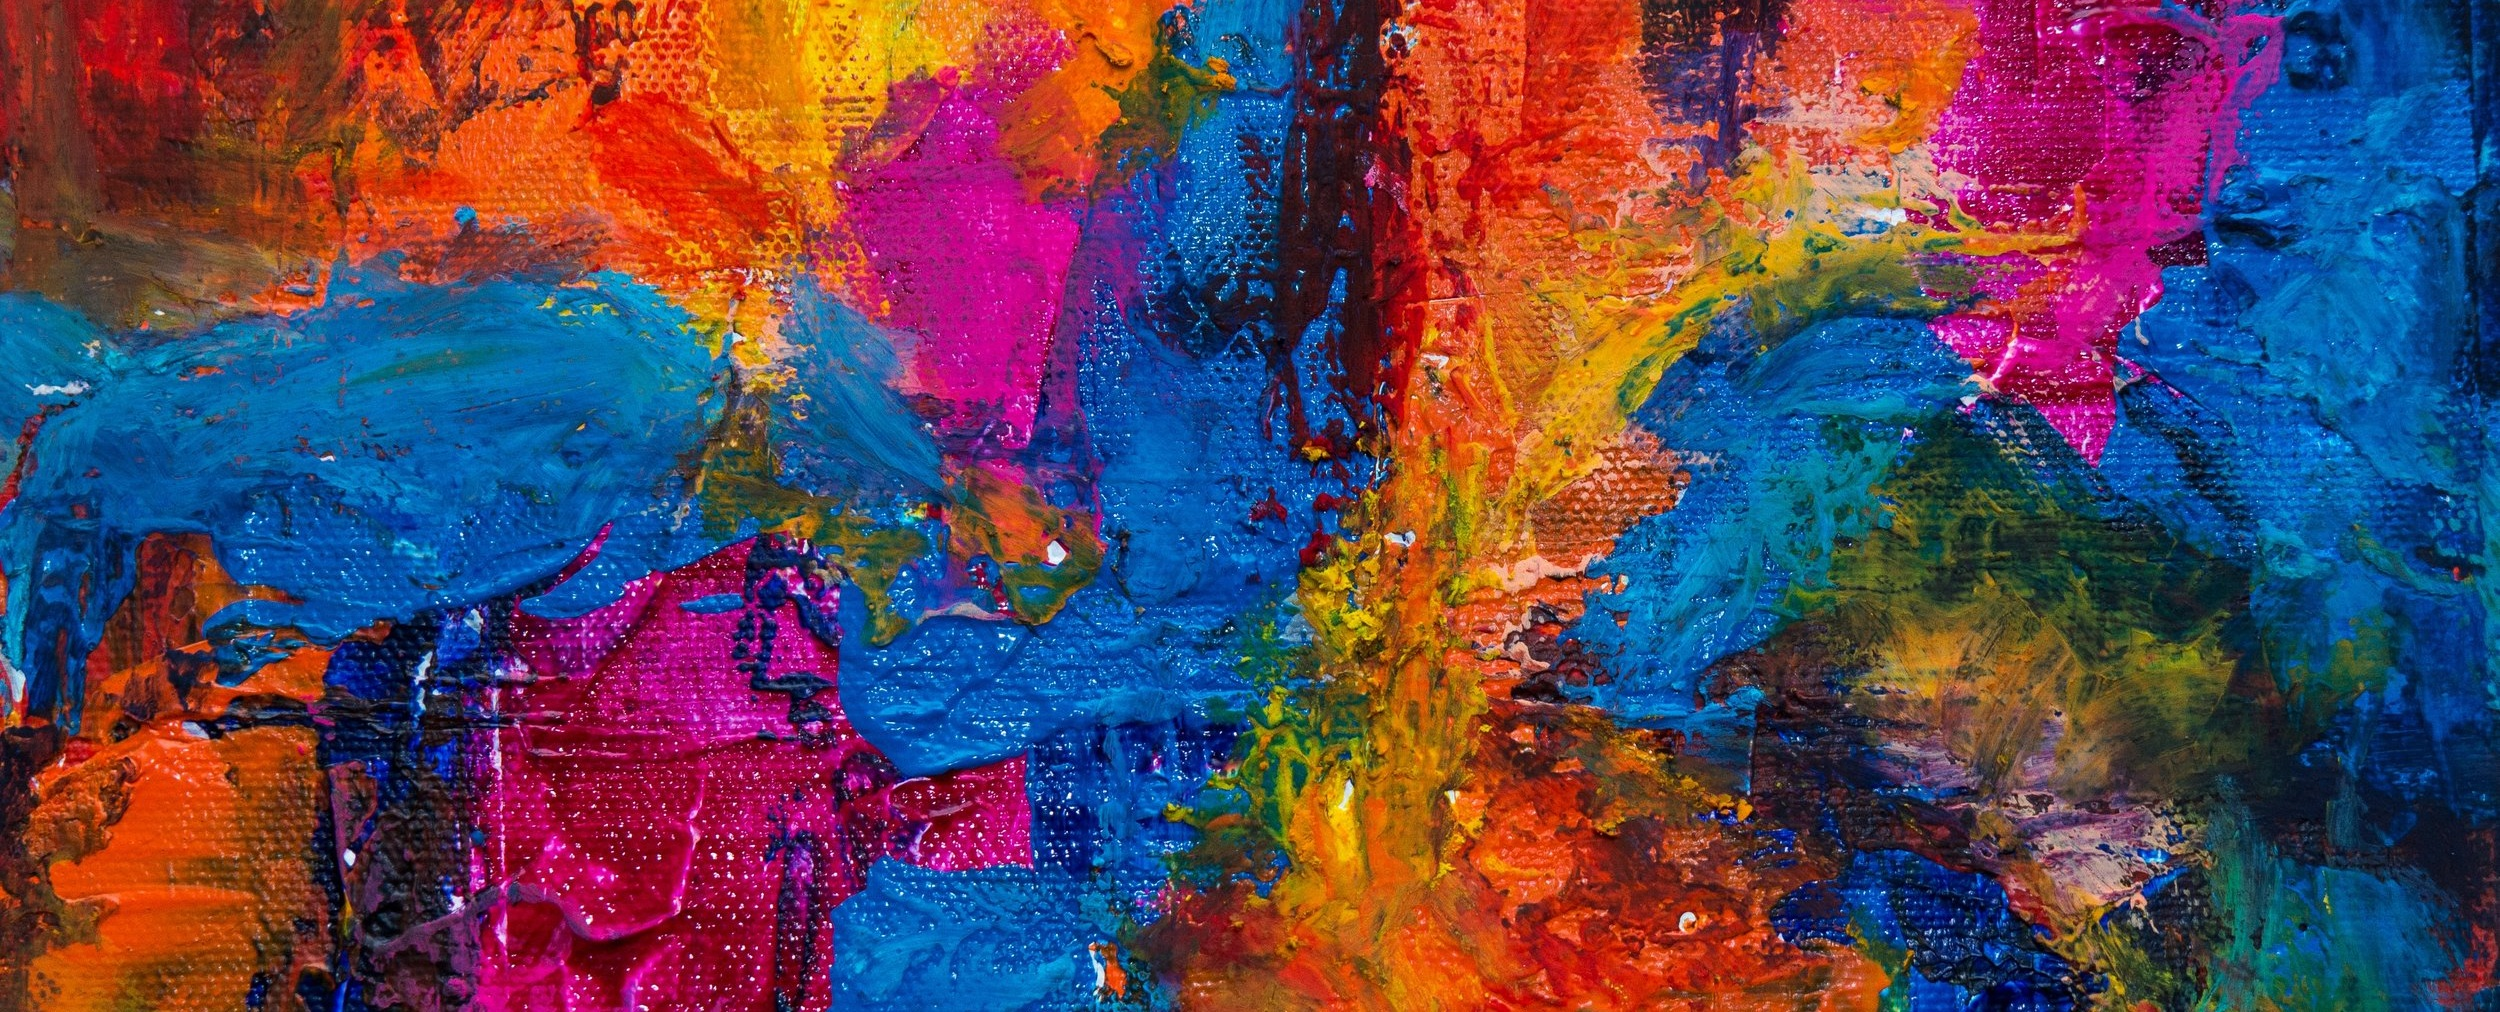 Courageous Conversations - painting